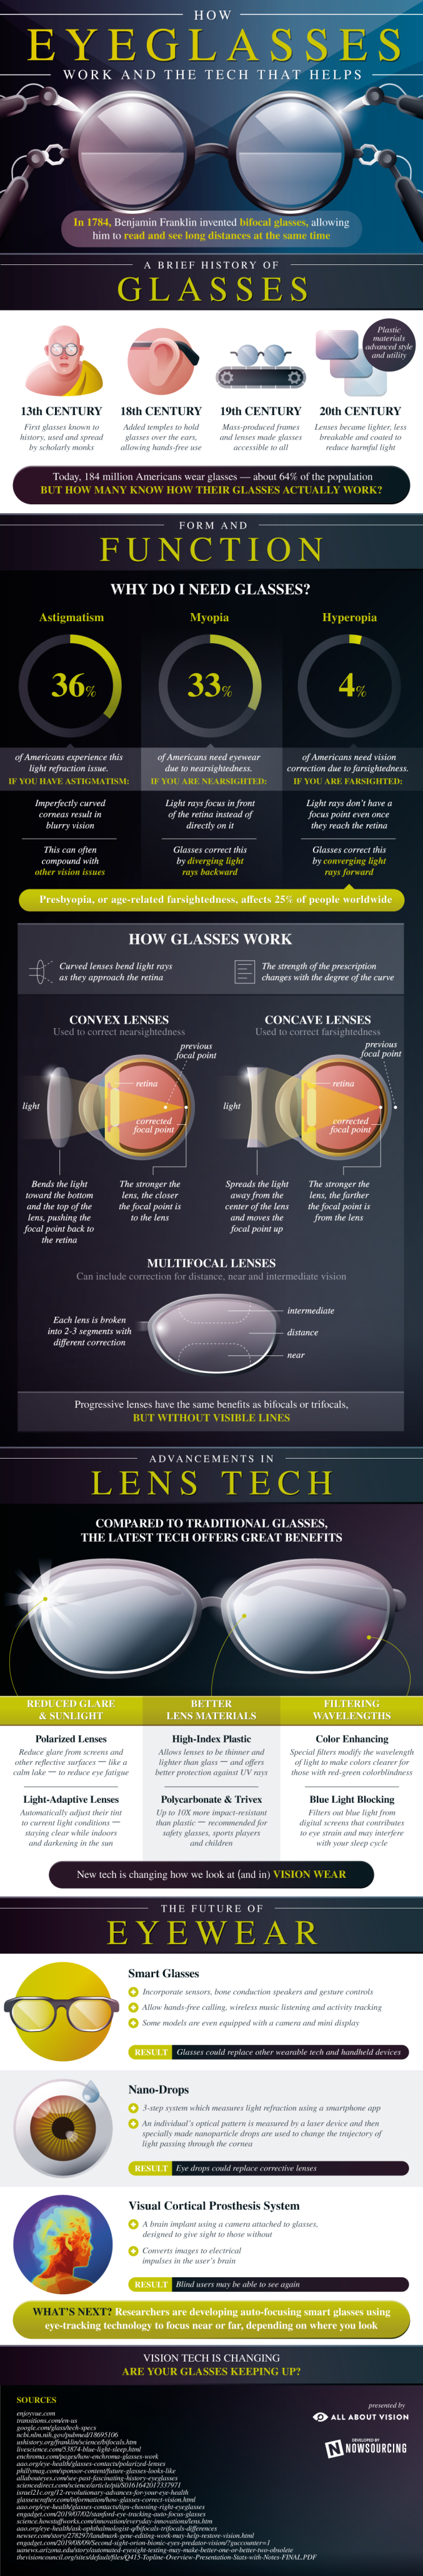 how eyeglasses work infographic 1000x6088 - A Brief History of Glasses and How Eyeglasses Work?